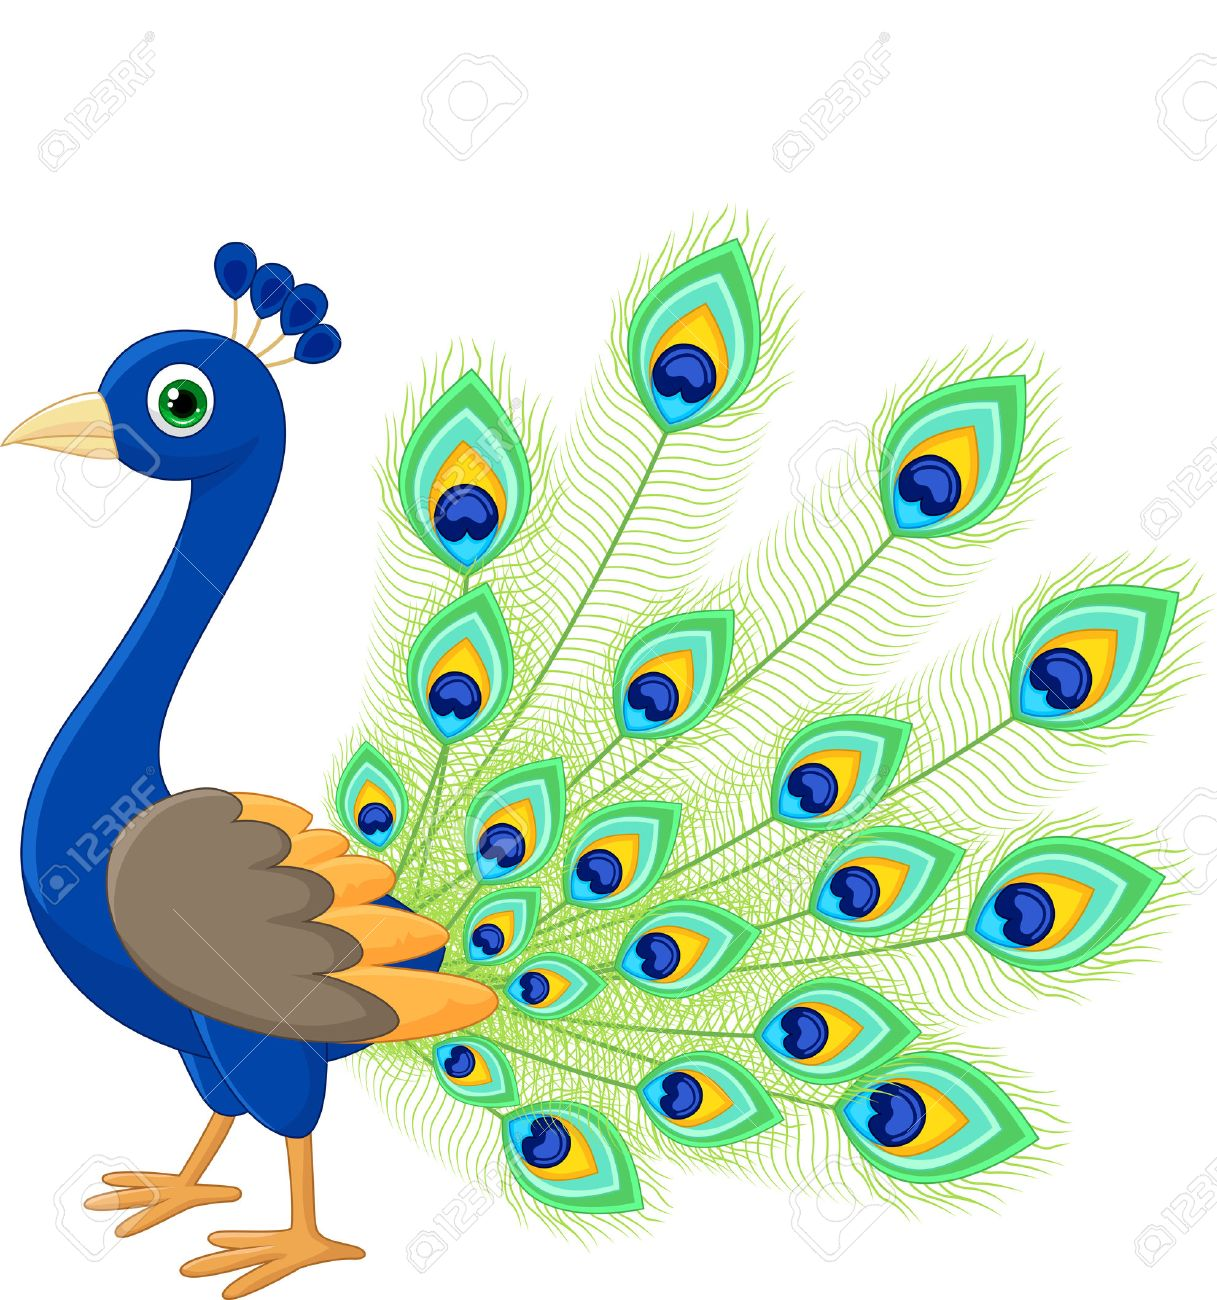 peacock cartoon royalty free cliparts vectors and stock rh 123rf com peacock clipart png peacock clip art for invitations